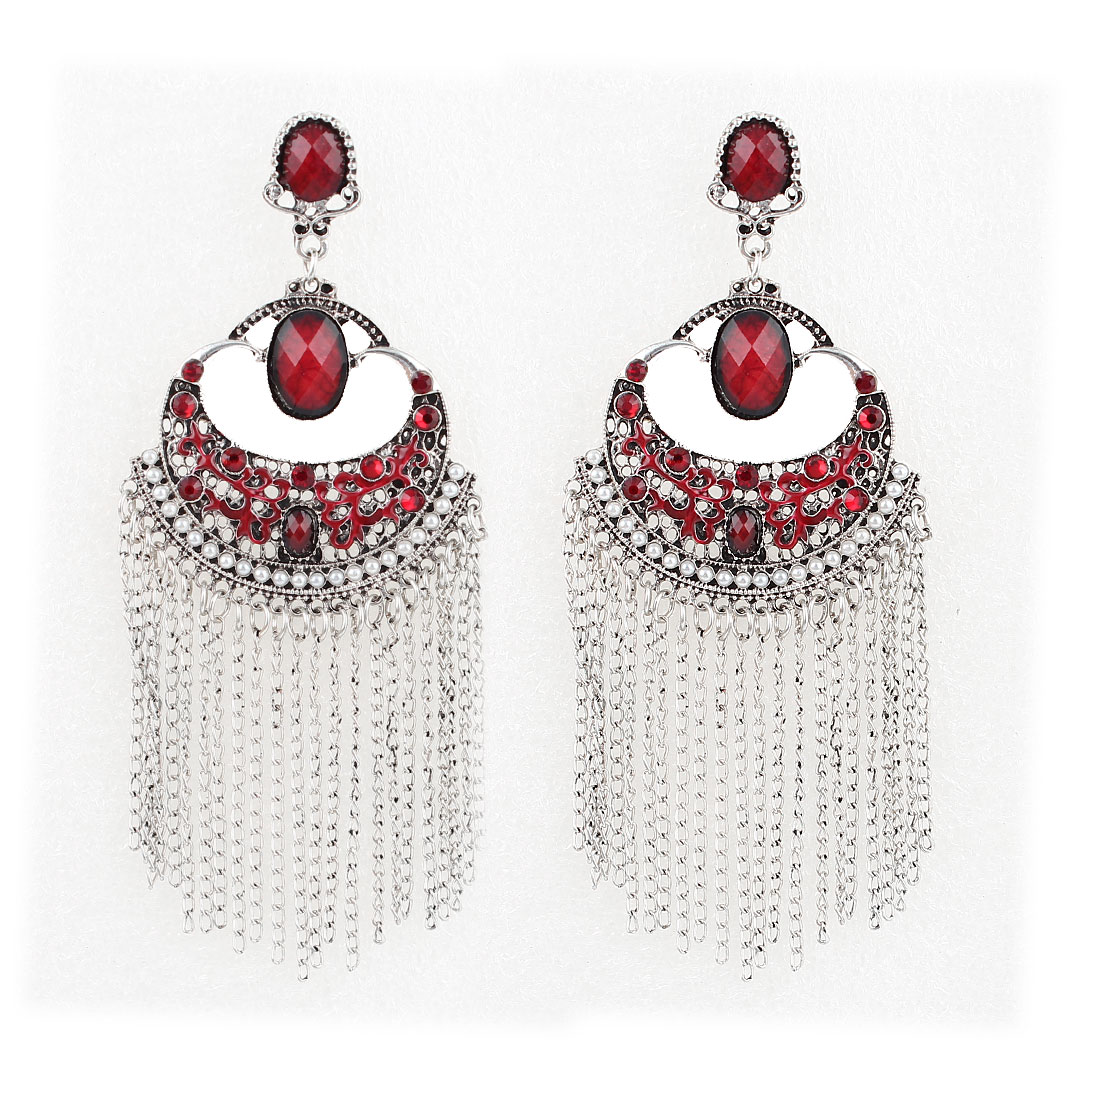 Pair Red Faceted Rhinestone Metal Chain Tassel Dangling Pendant Earring for Lady